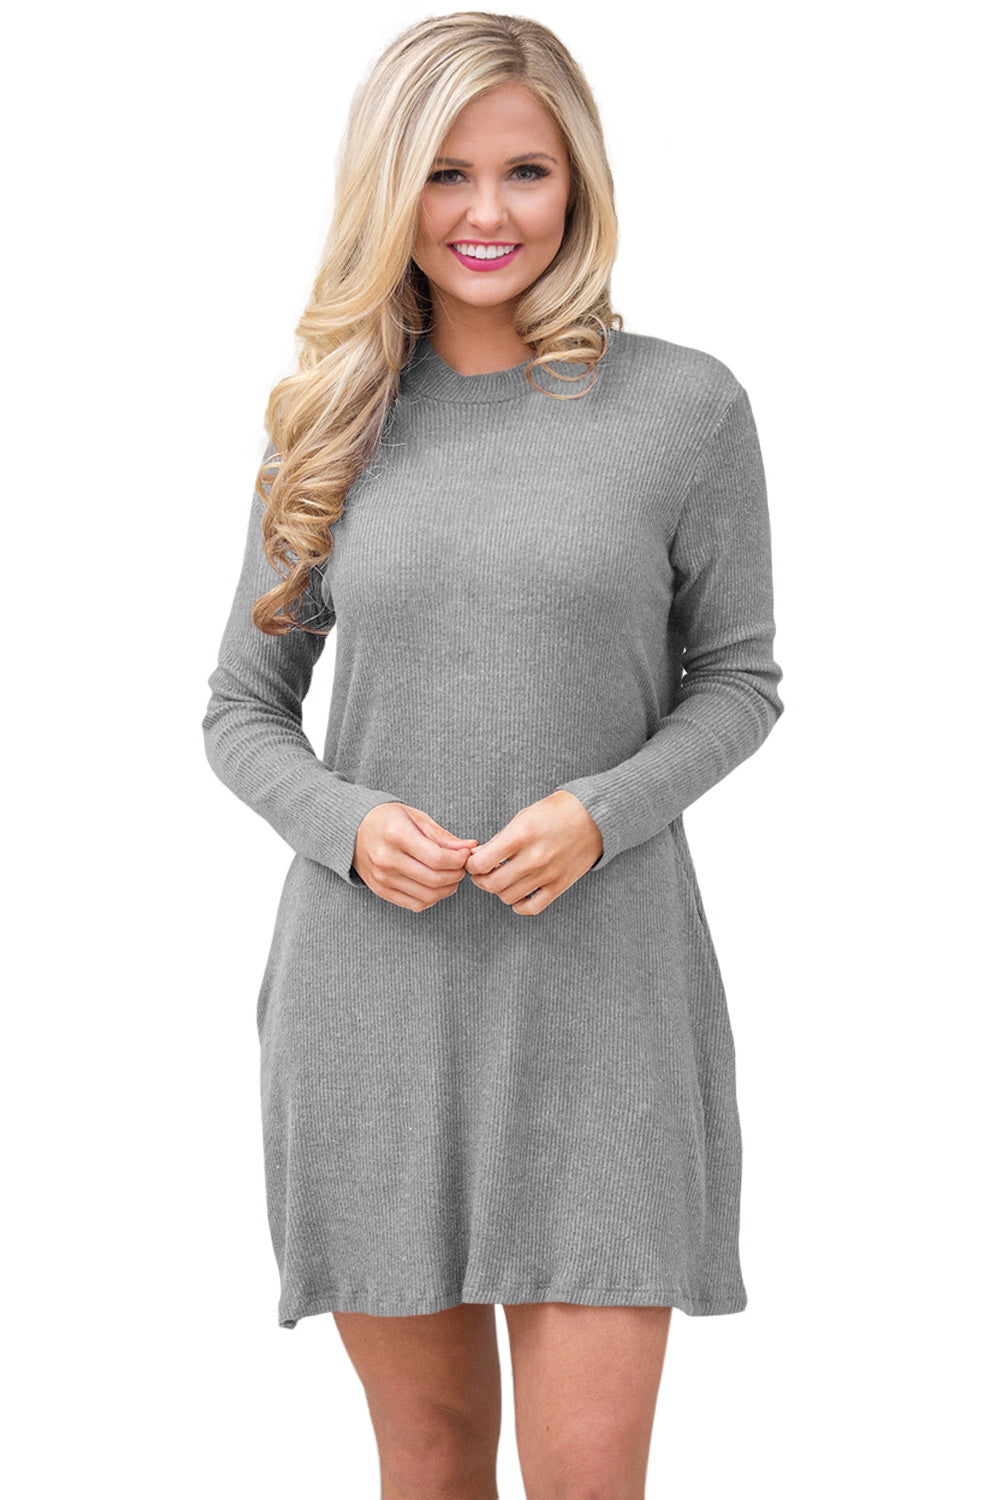 Her Fashion Gorgeous Grey High Neck Long Sleeve Knit Sweater Dress